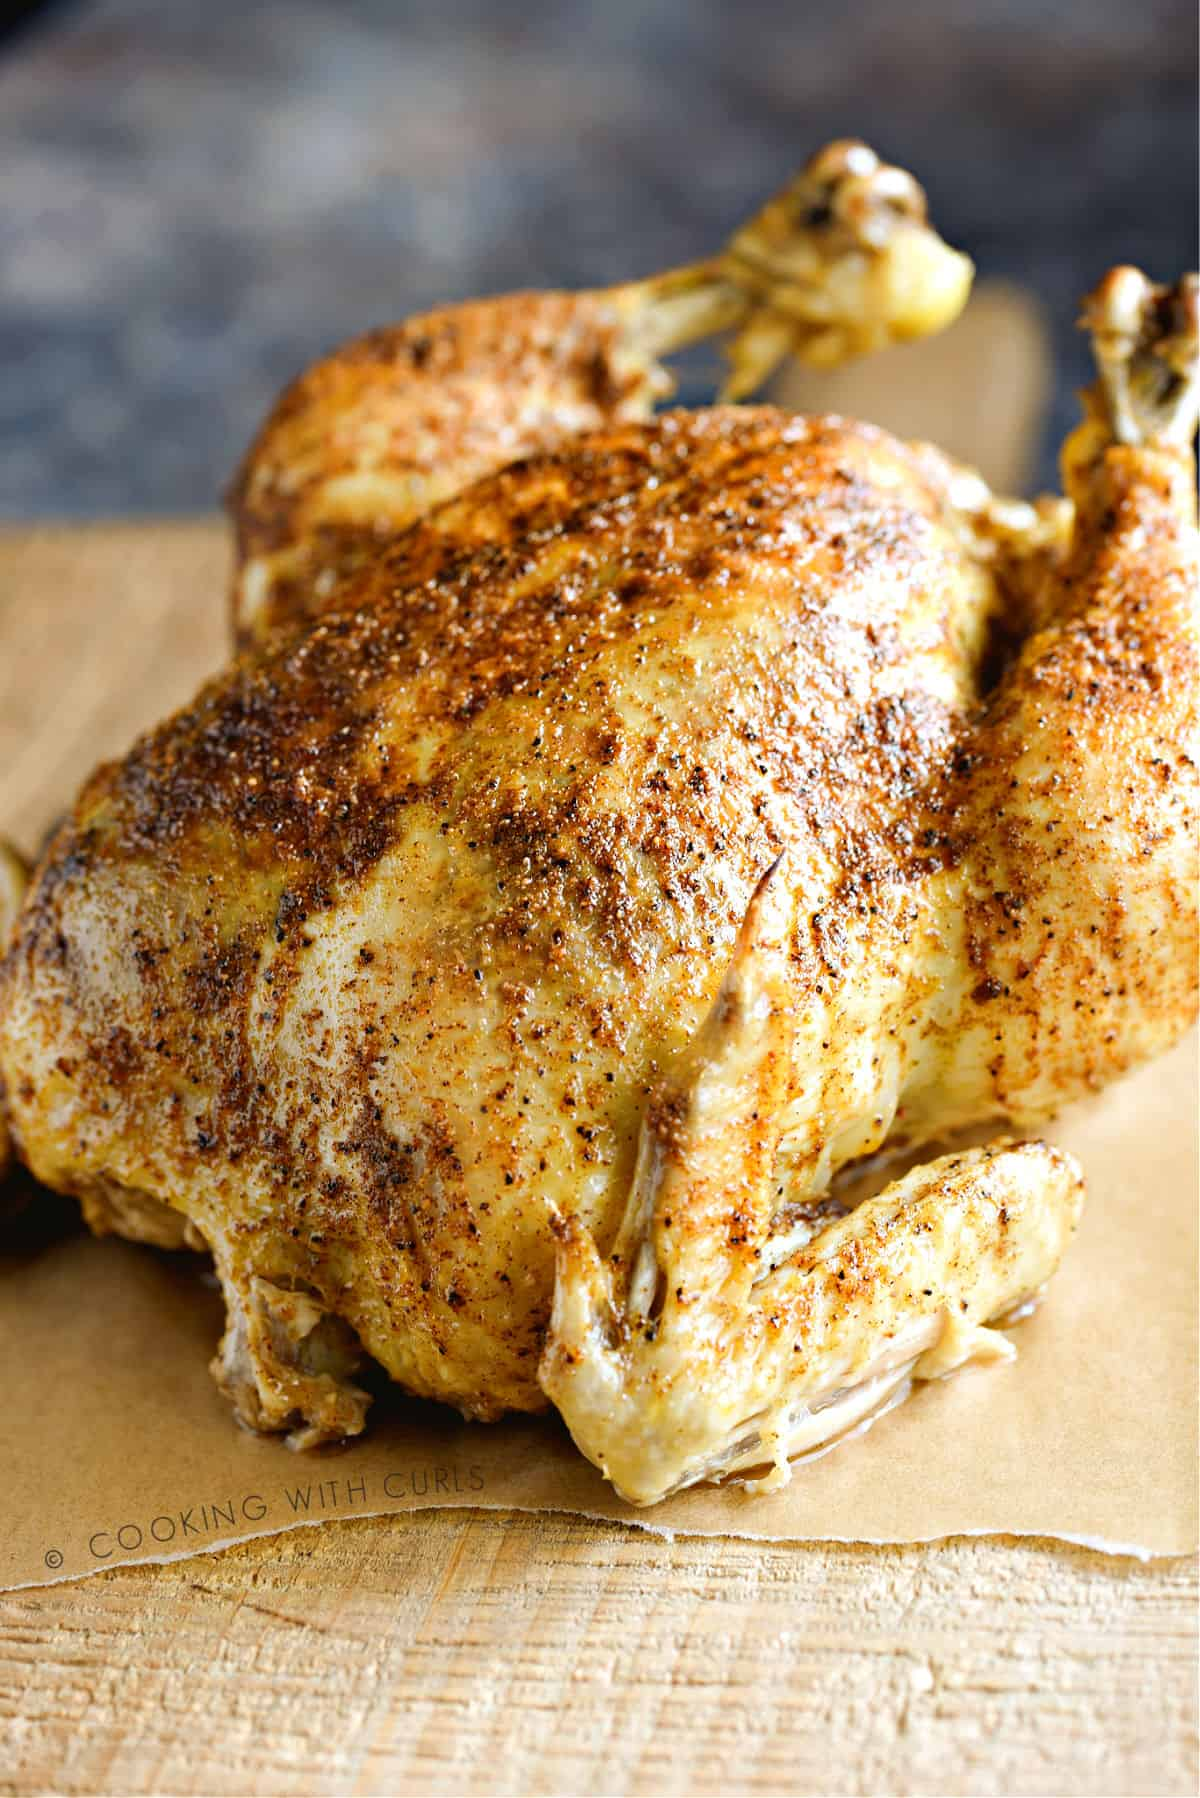 a whole chicken that was cooked in a pressure cooker sitting on a wooden cutting board.